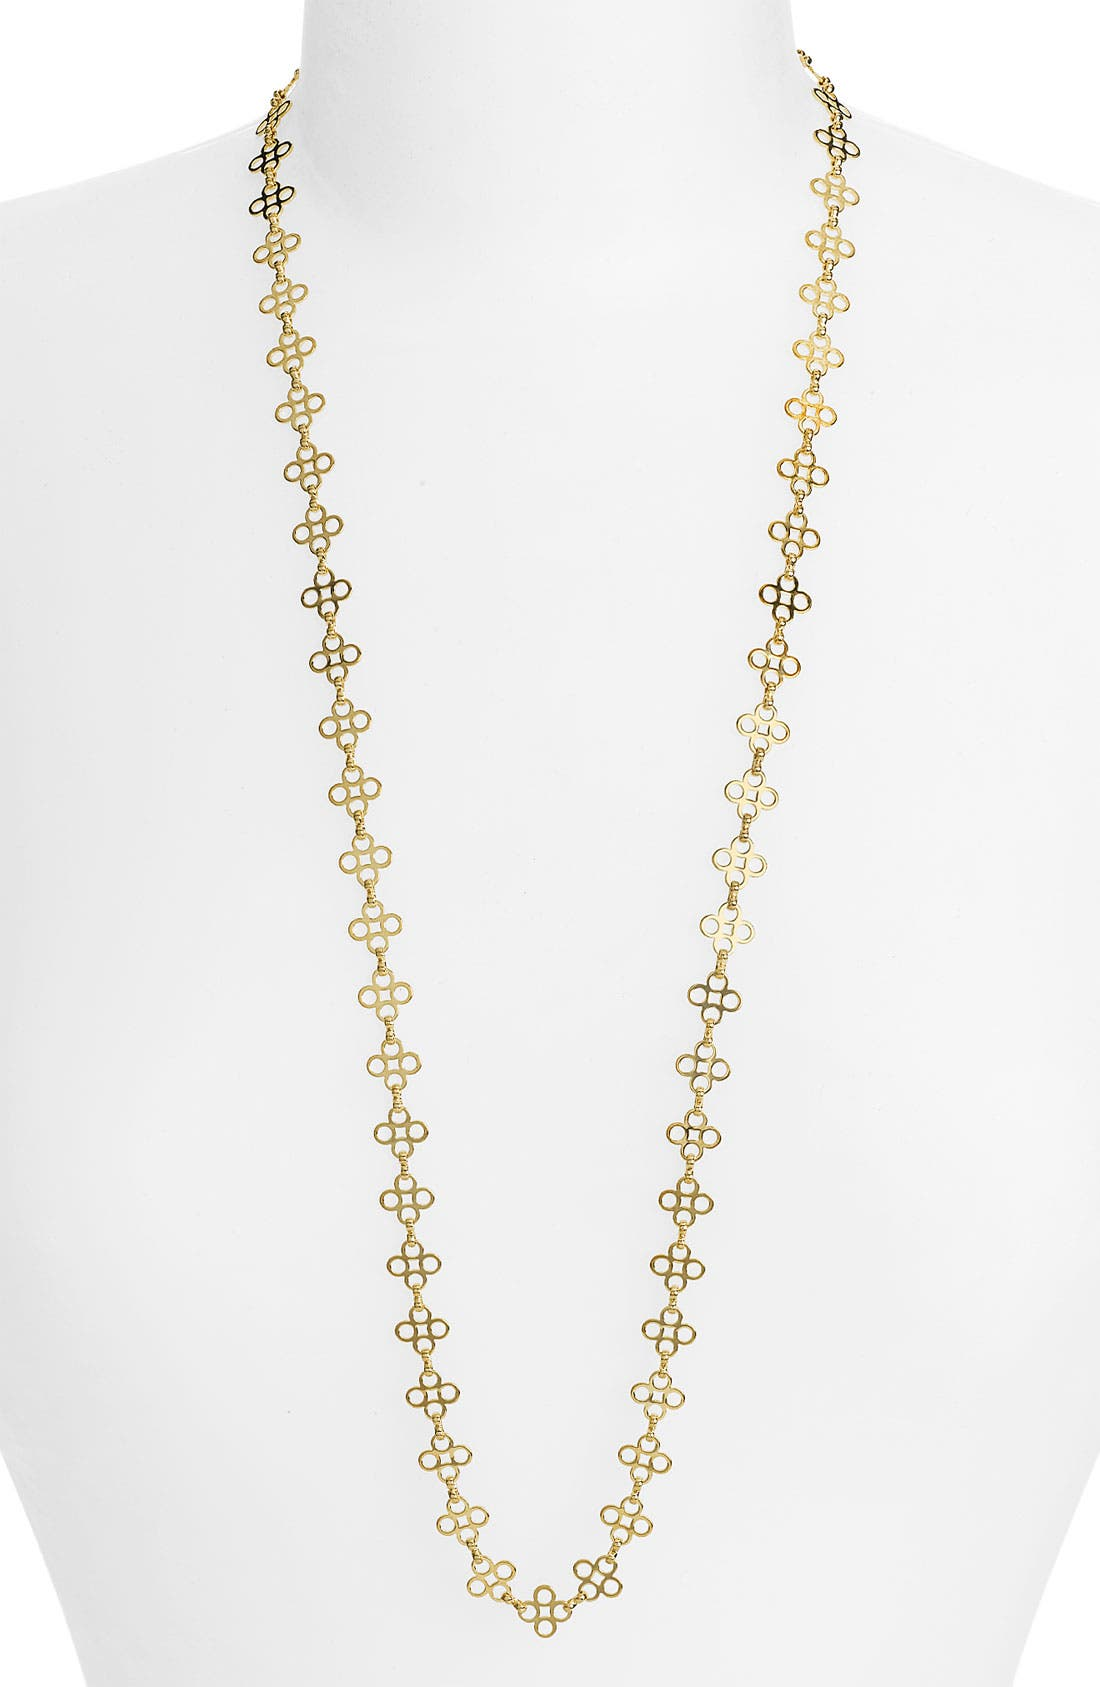 Main Image - MINI CLOVER CHAIN NECKLACE